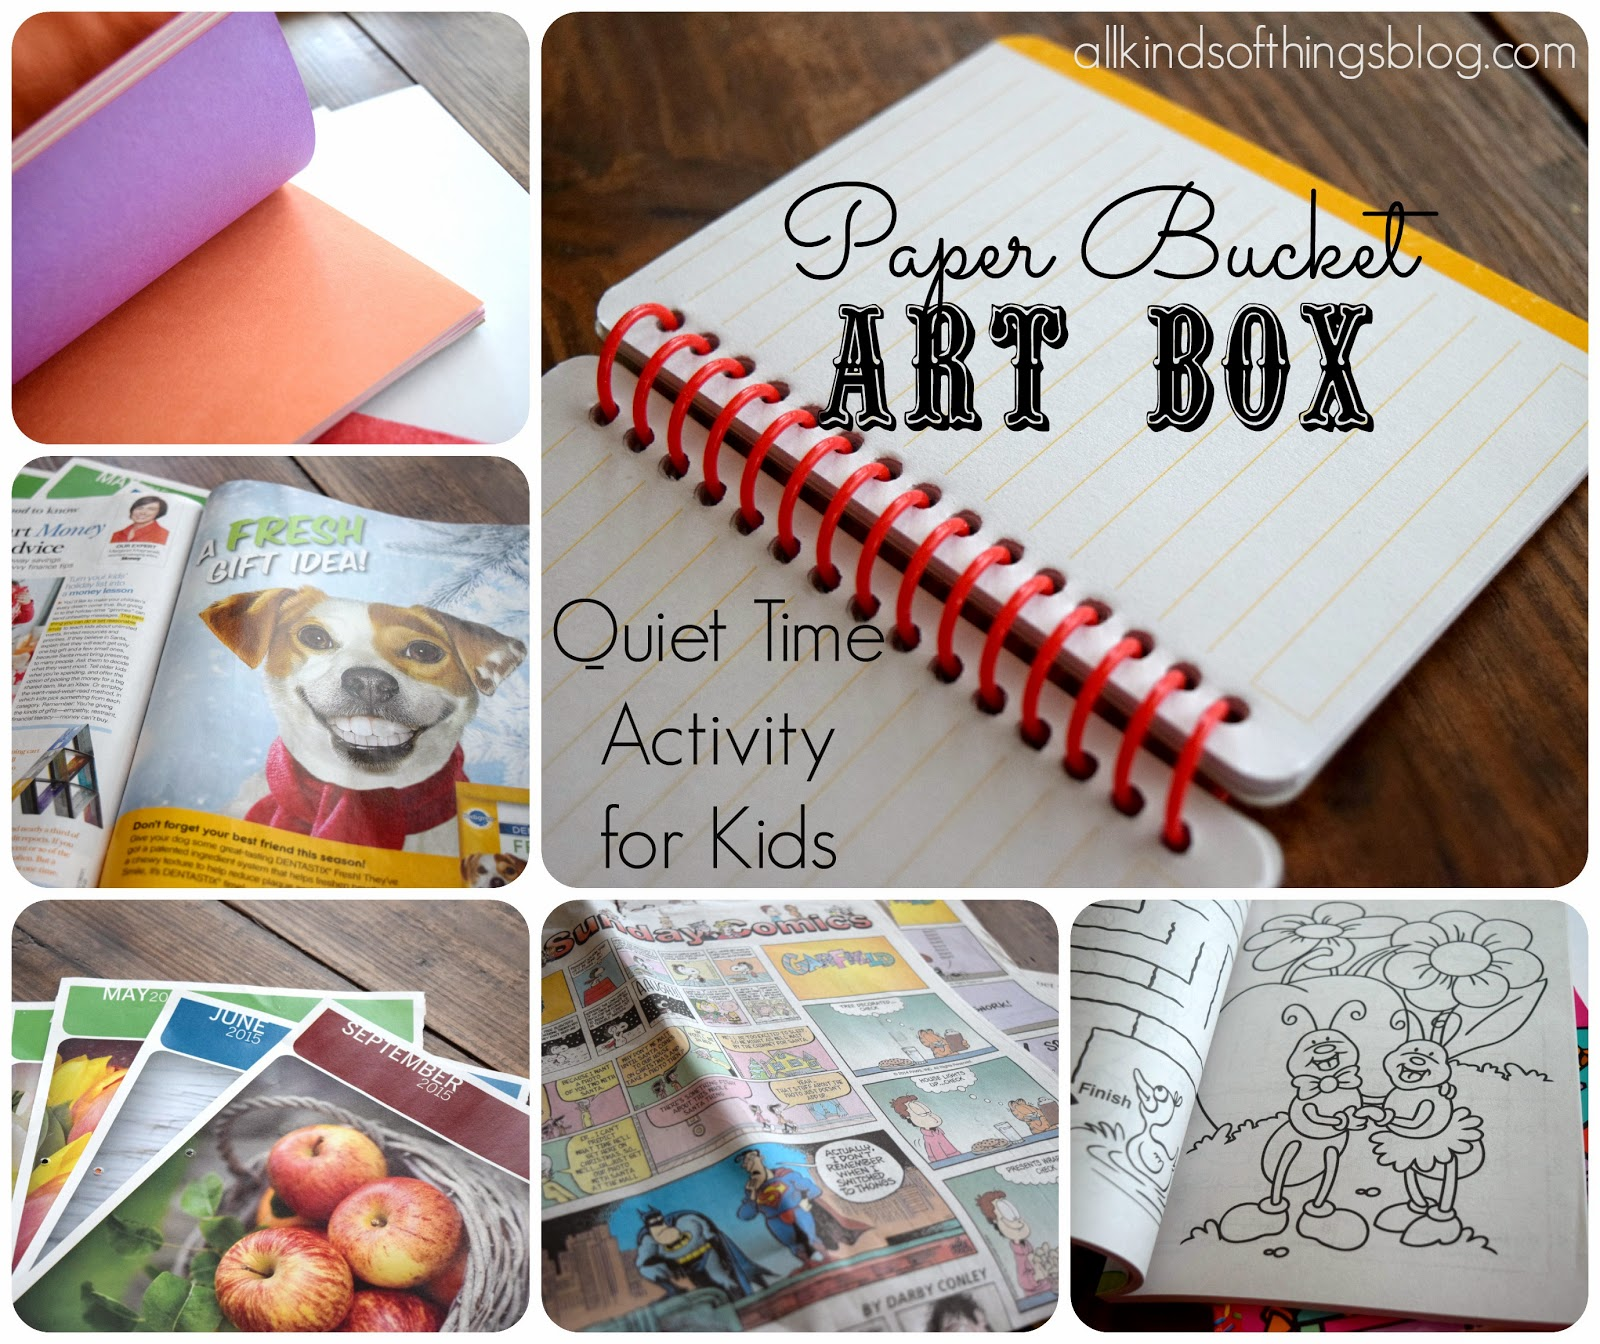 Paper Bucket Art Box